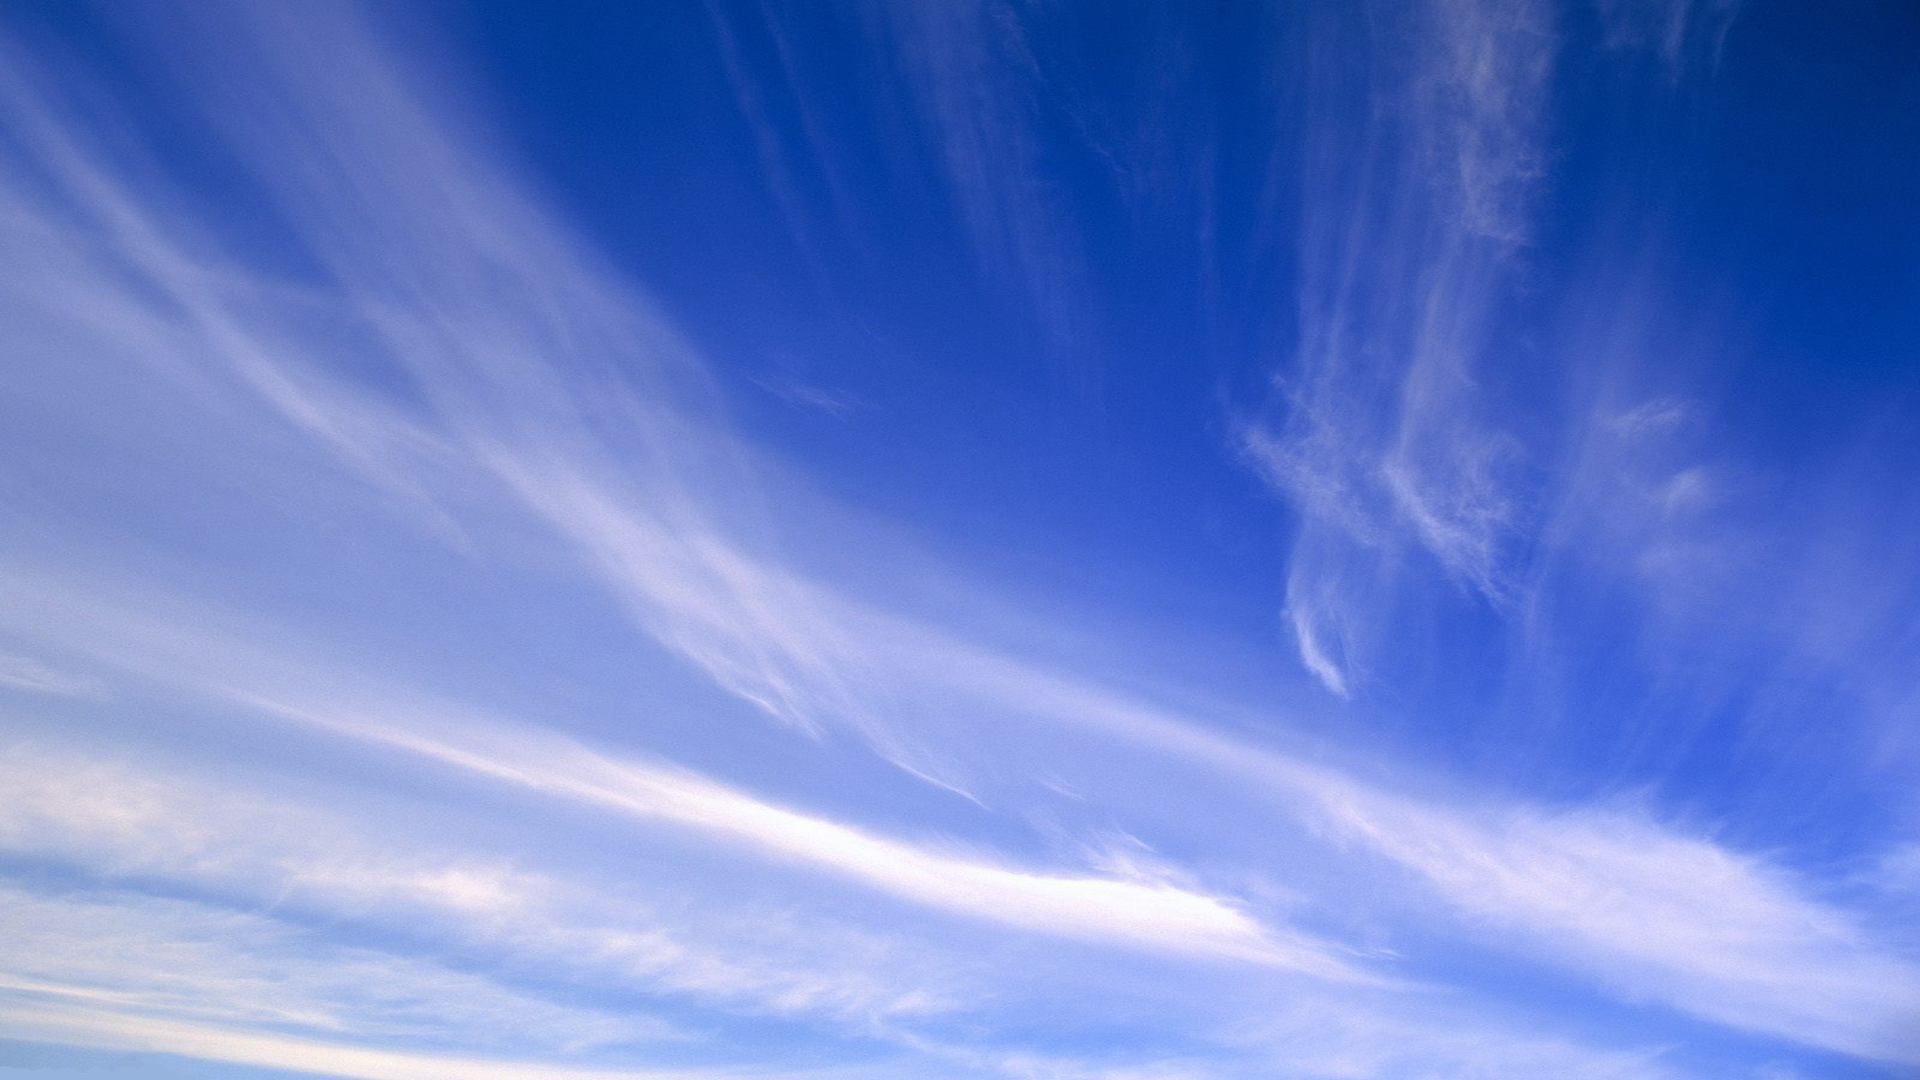 sky clouds wallpaper hd - photo #17